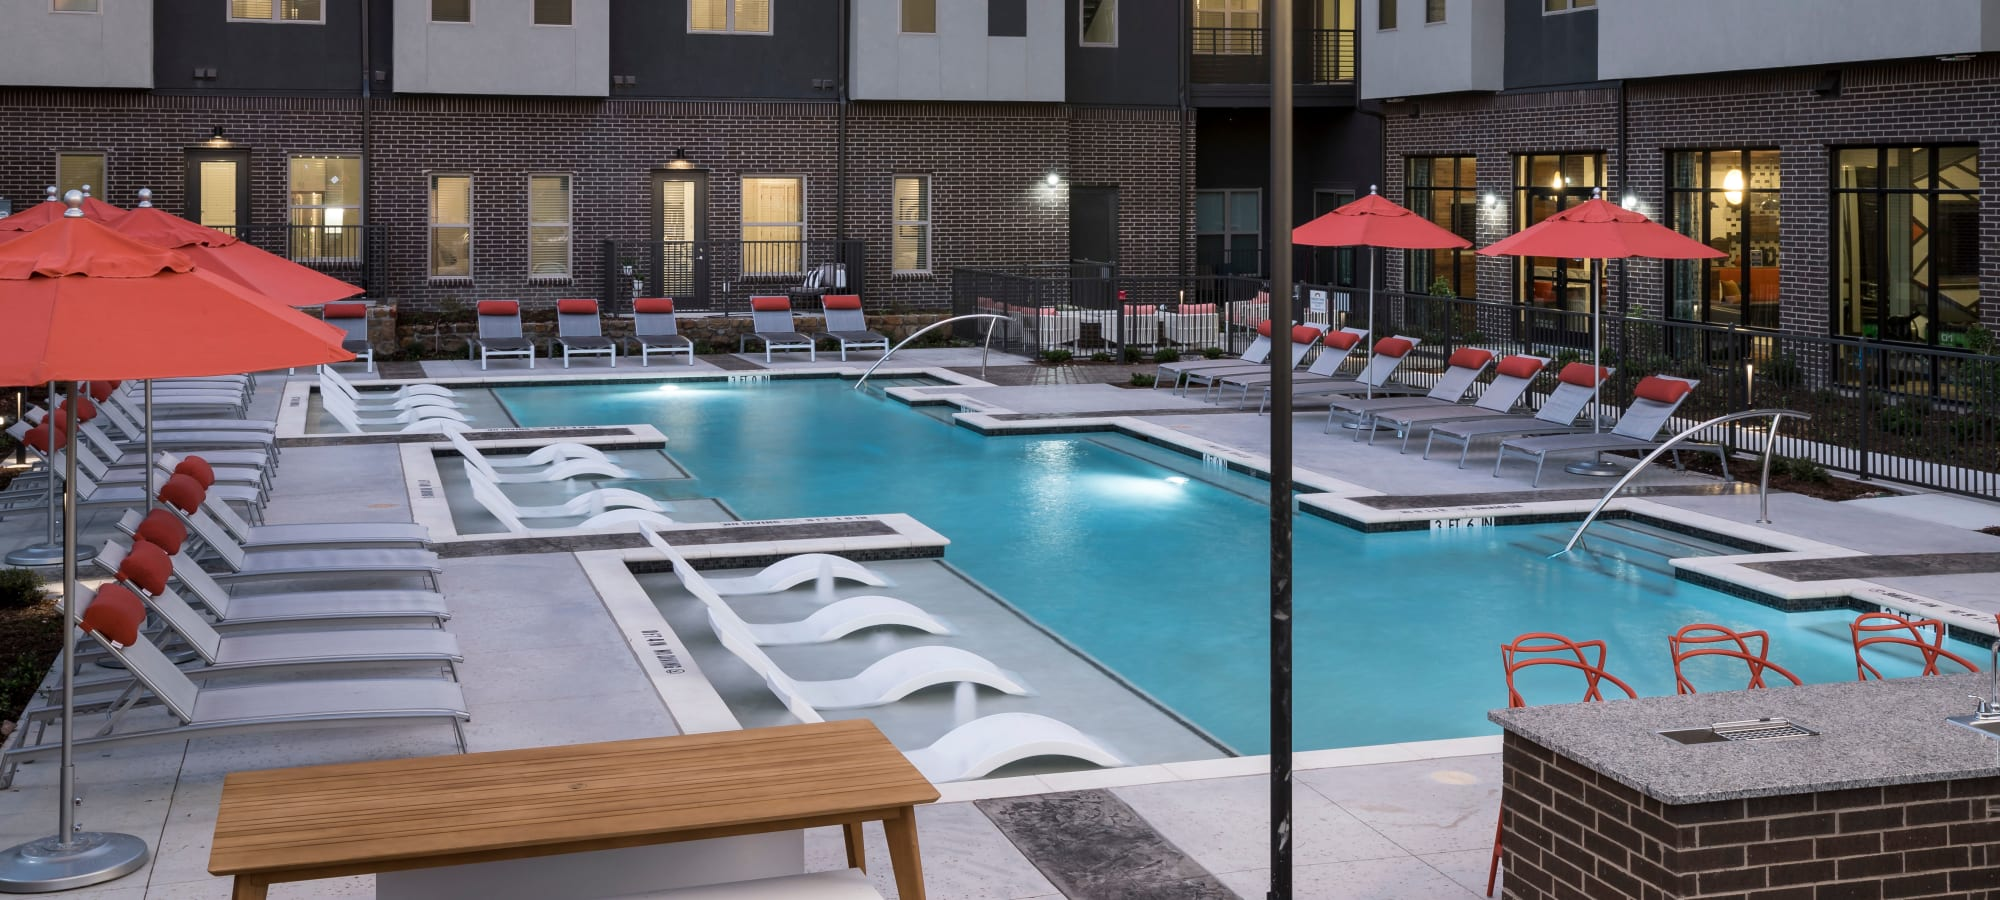 Apartments with pool at The ReVe in Garland, Texas